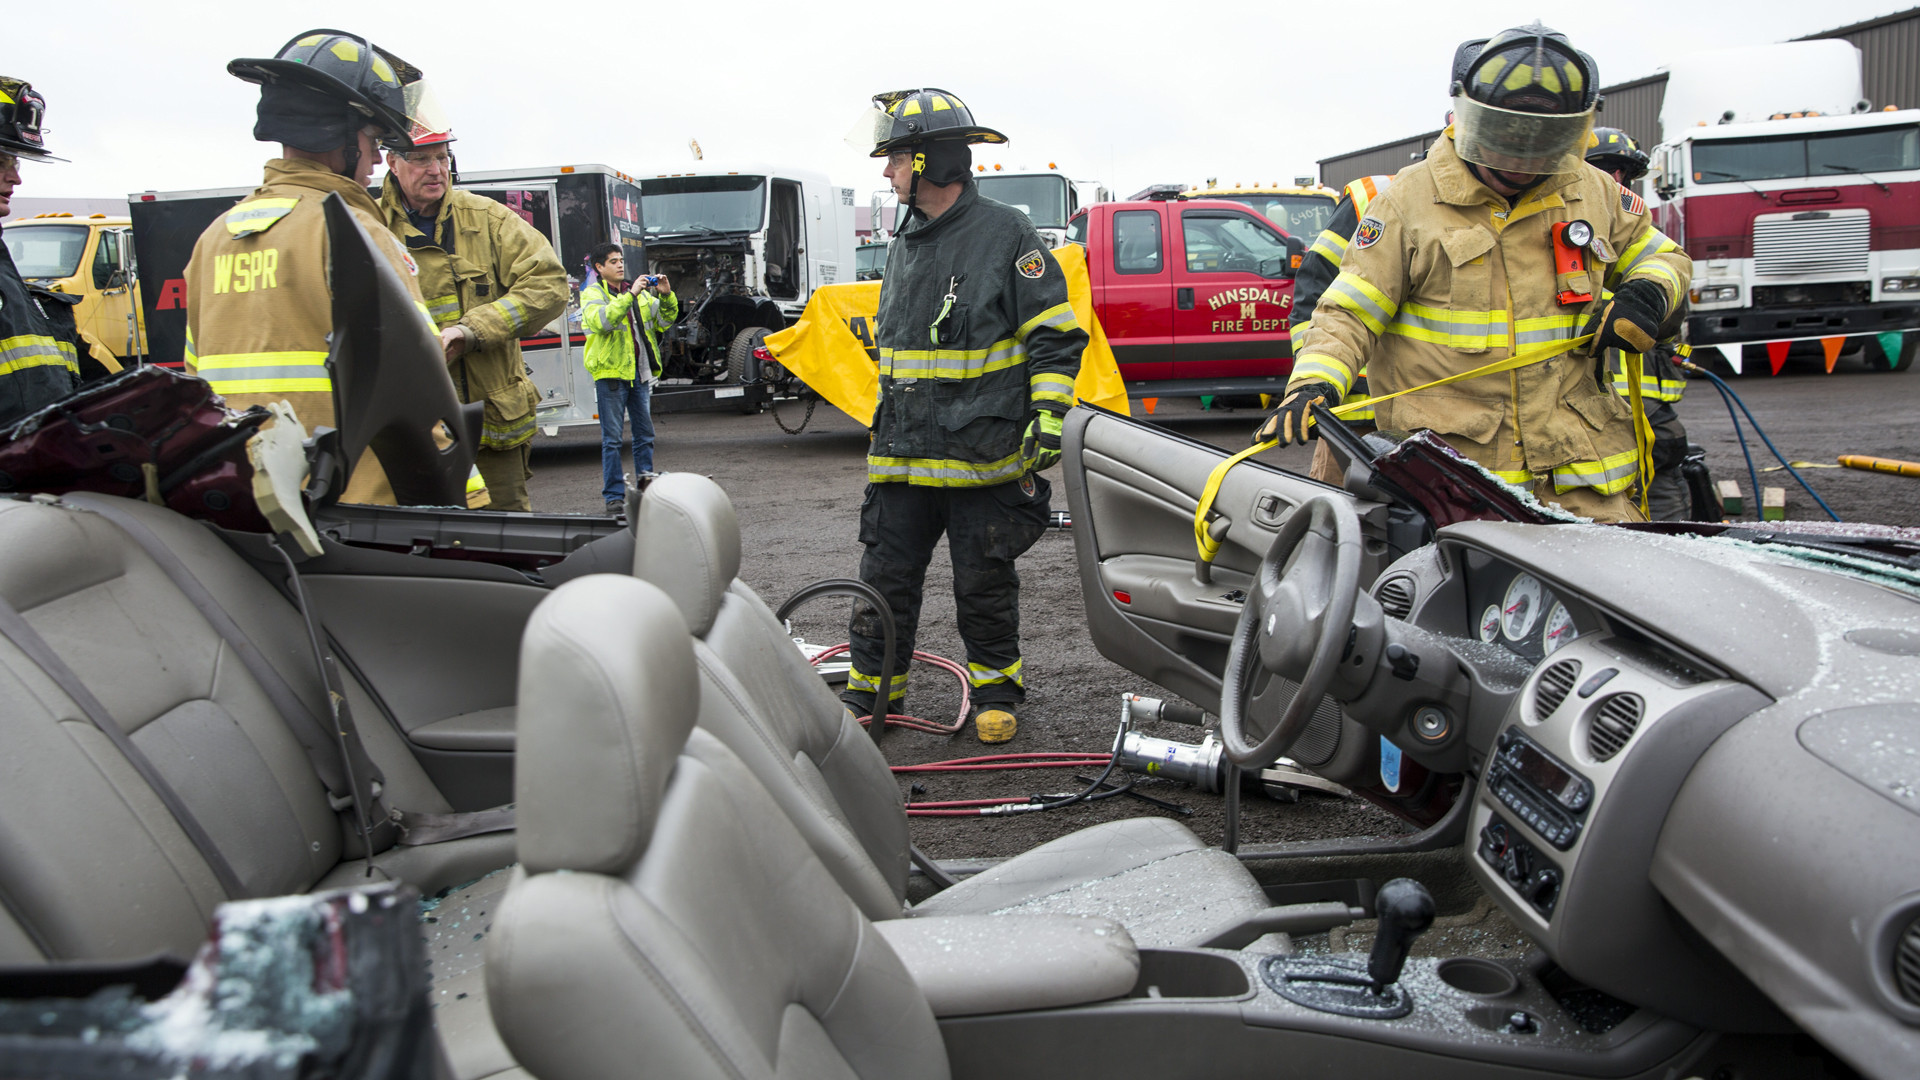 Training Gives Firefighters Practice In Latest Vehicle